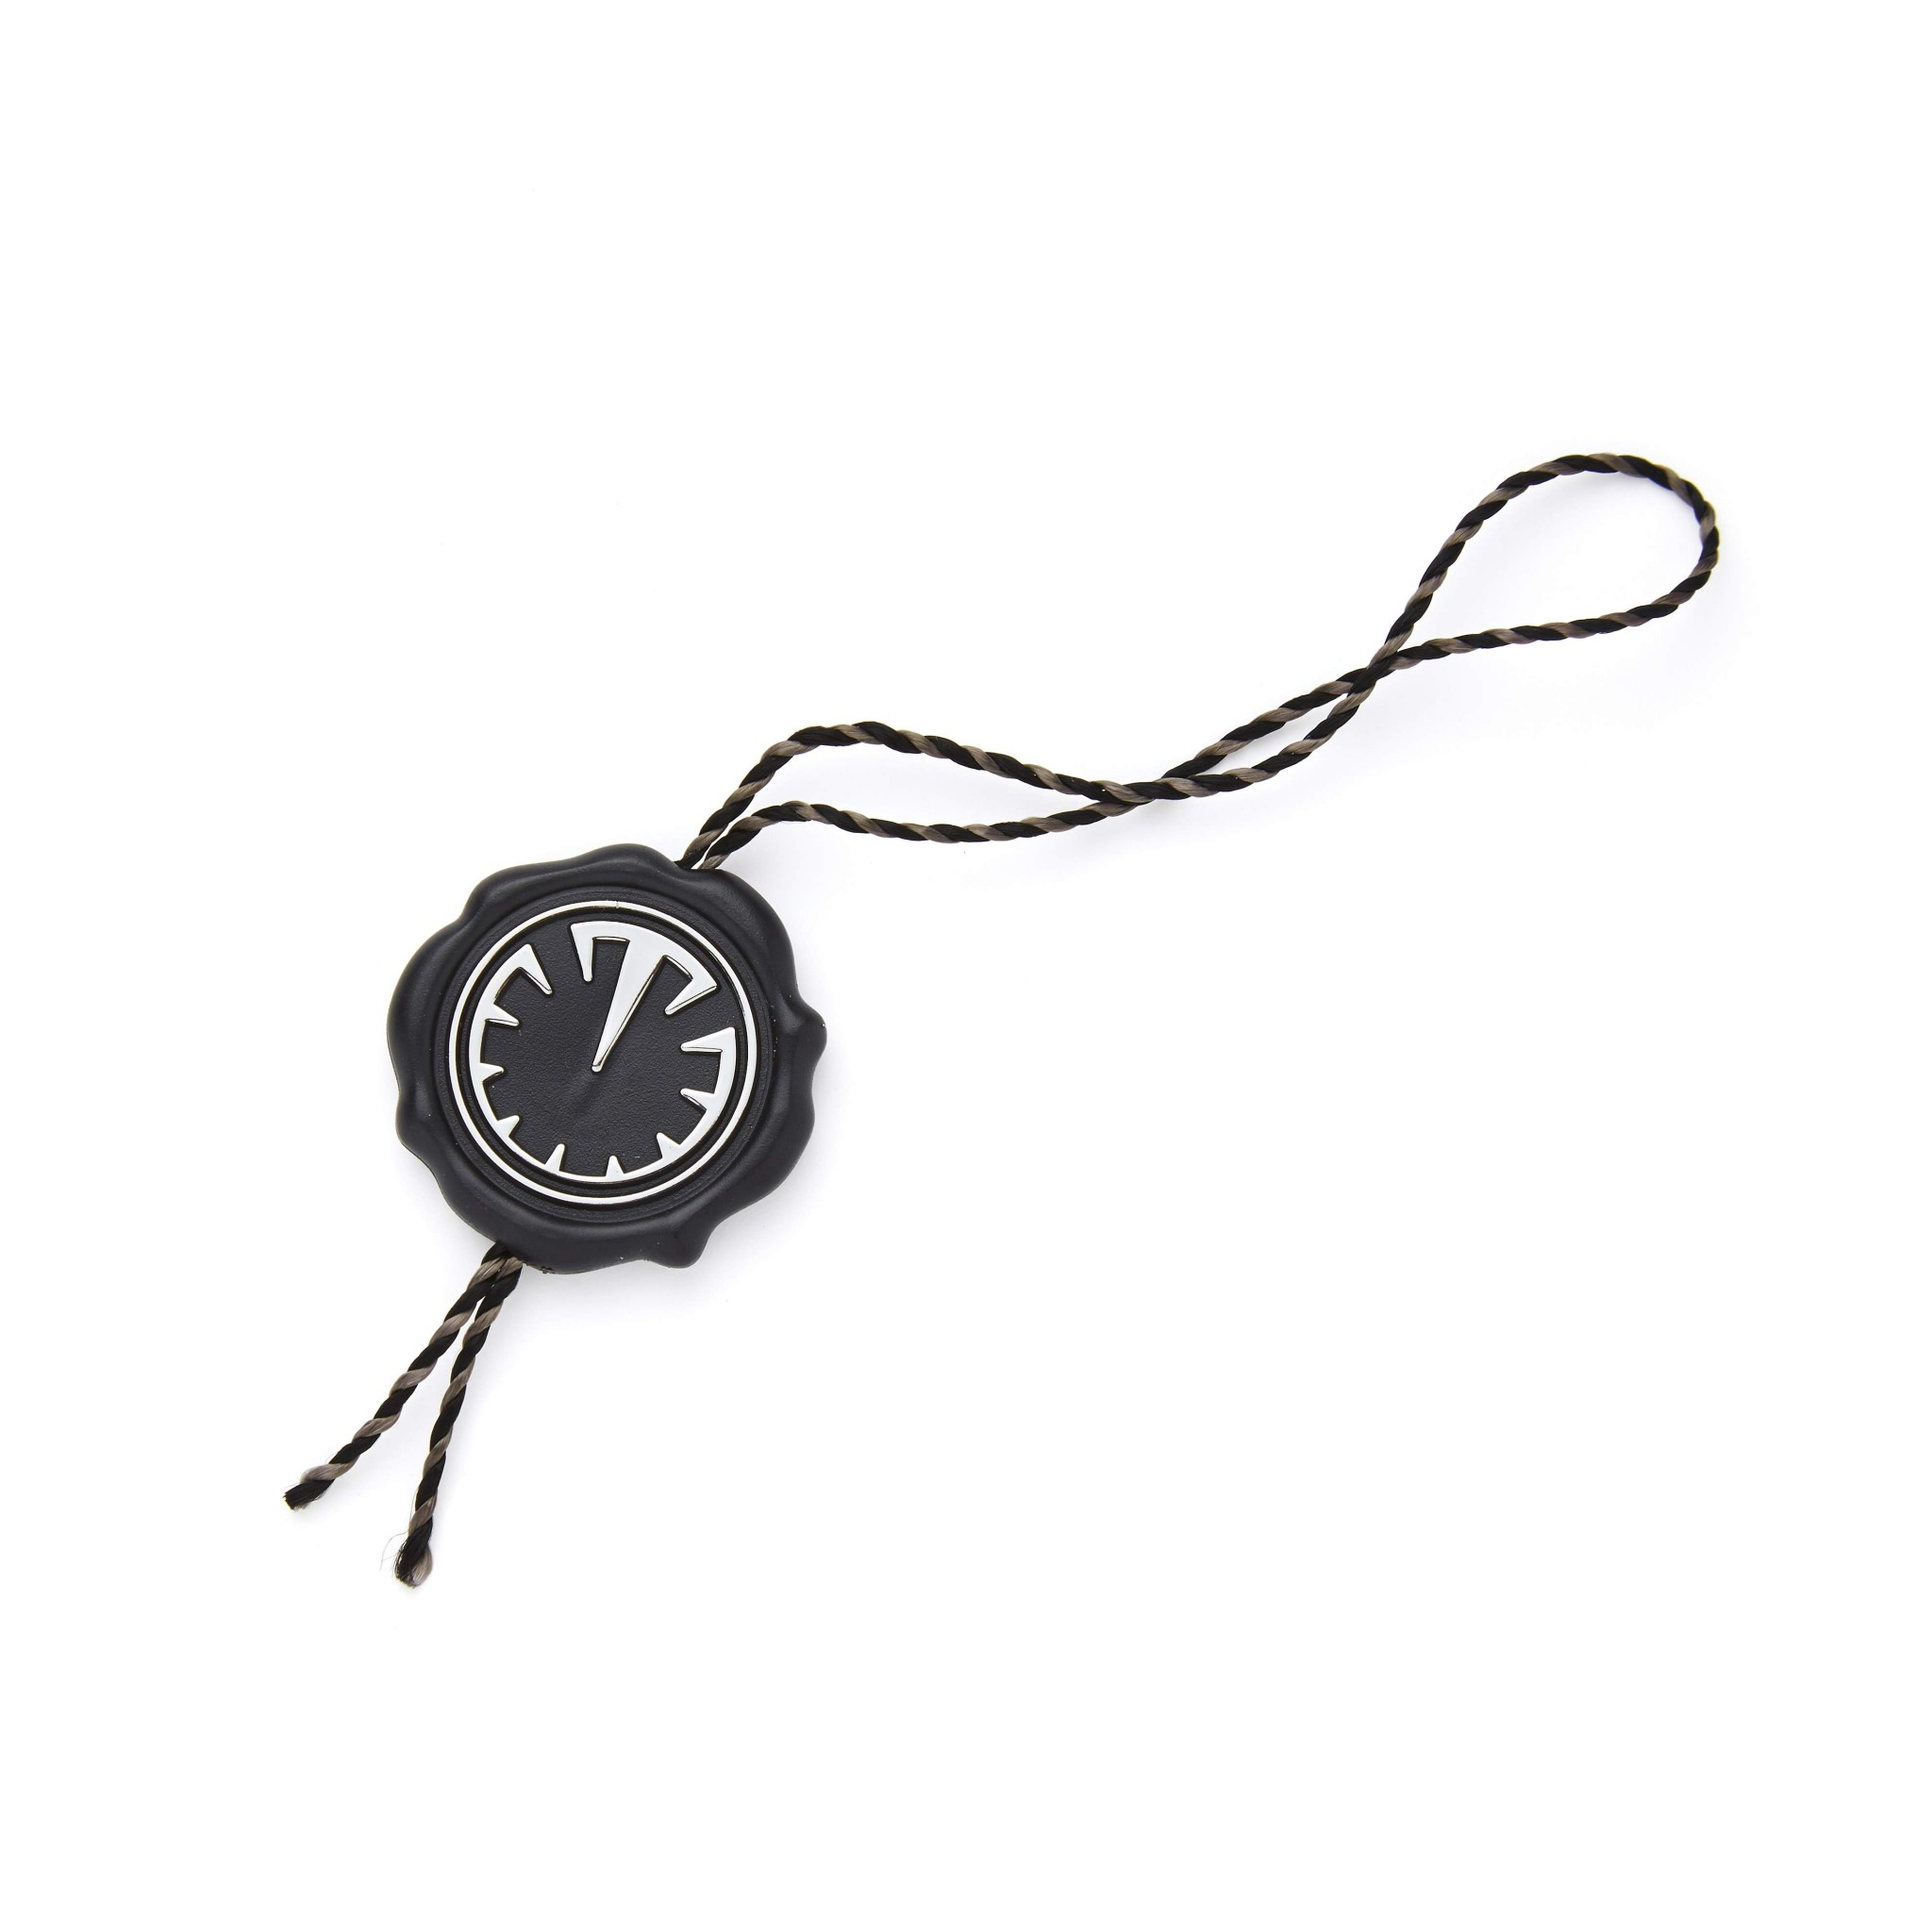 Titan Black Watch Hang Tag